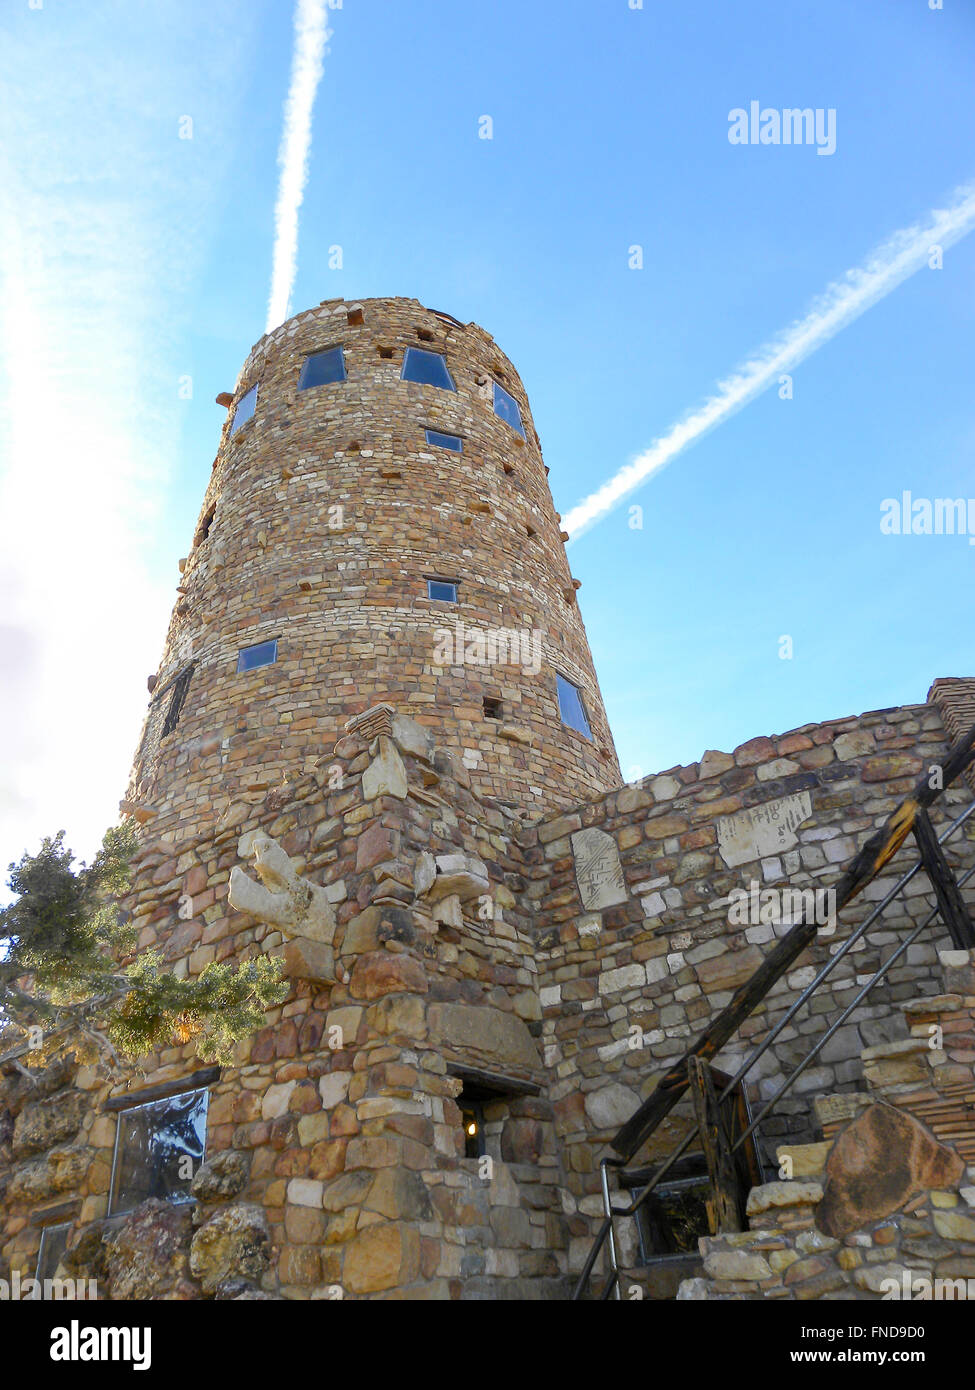 Rock building at Grand Canyon, blue sky. - Stock Image